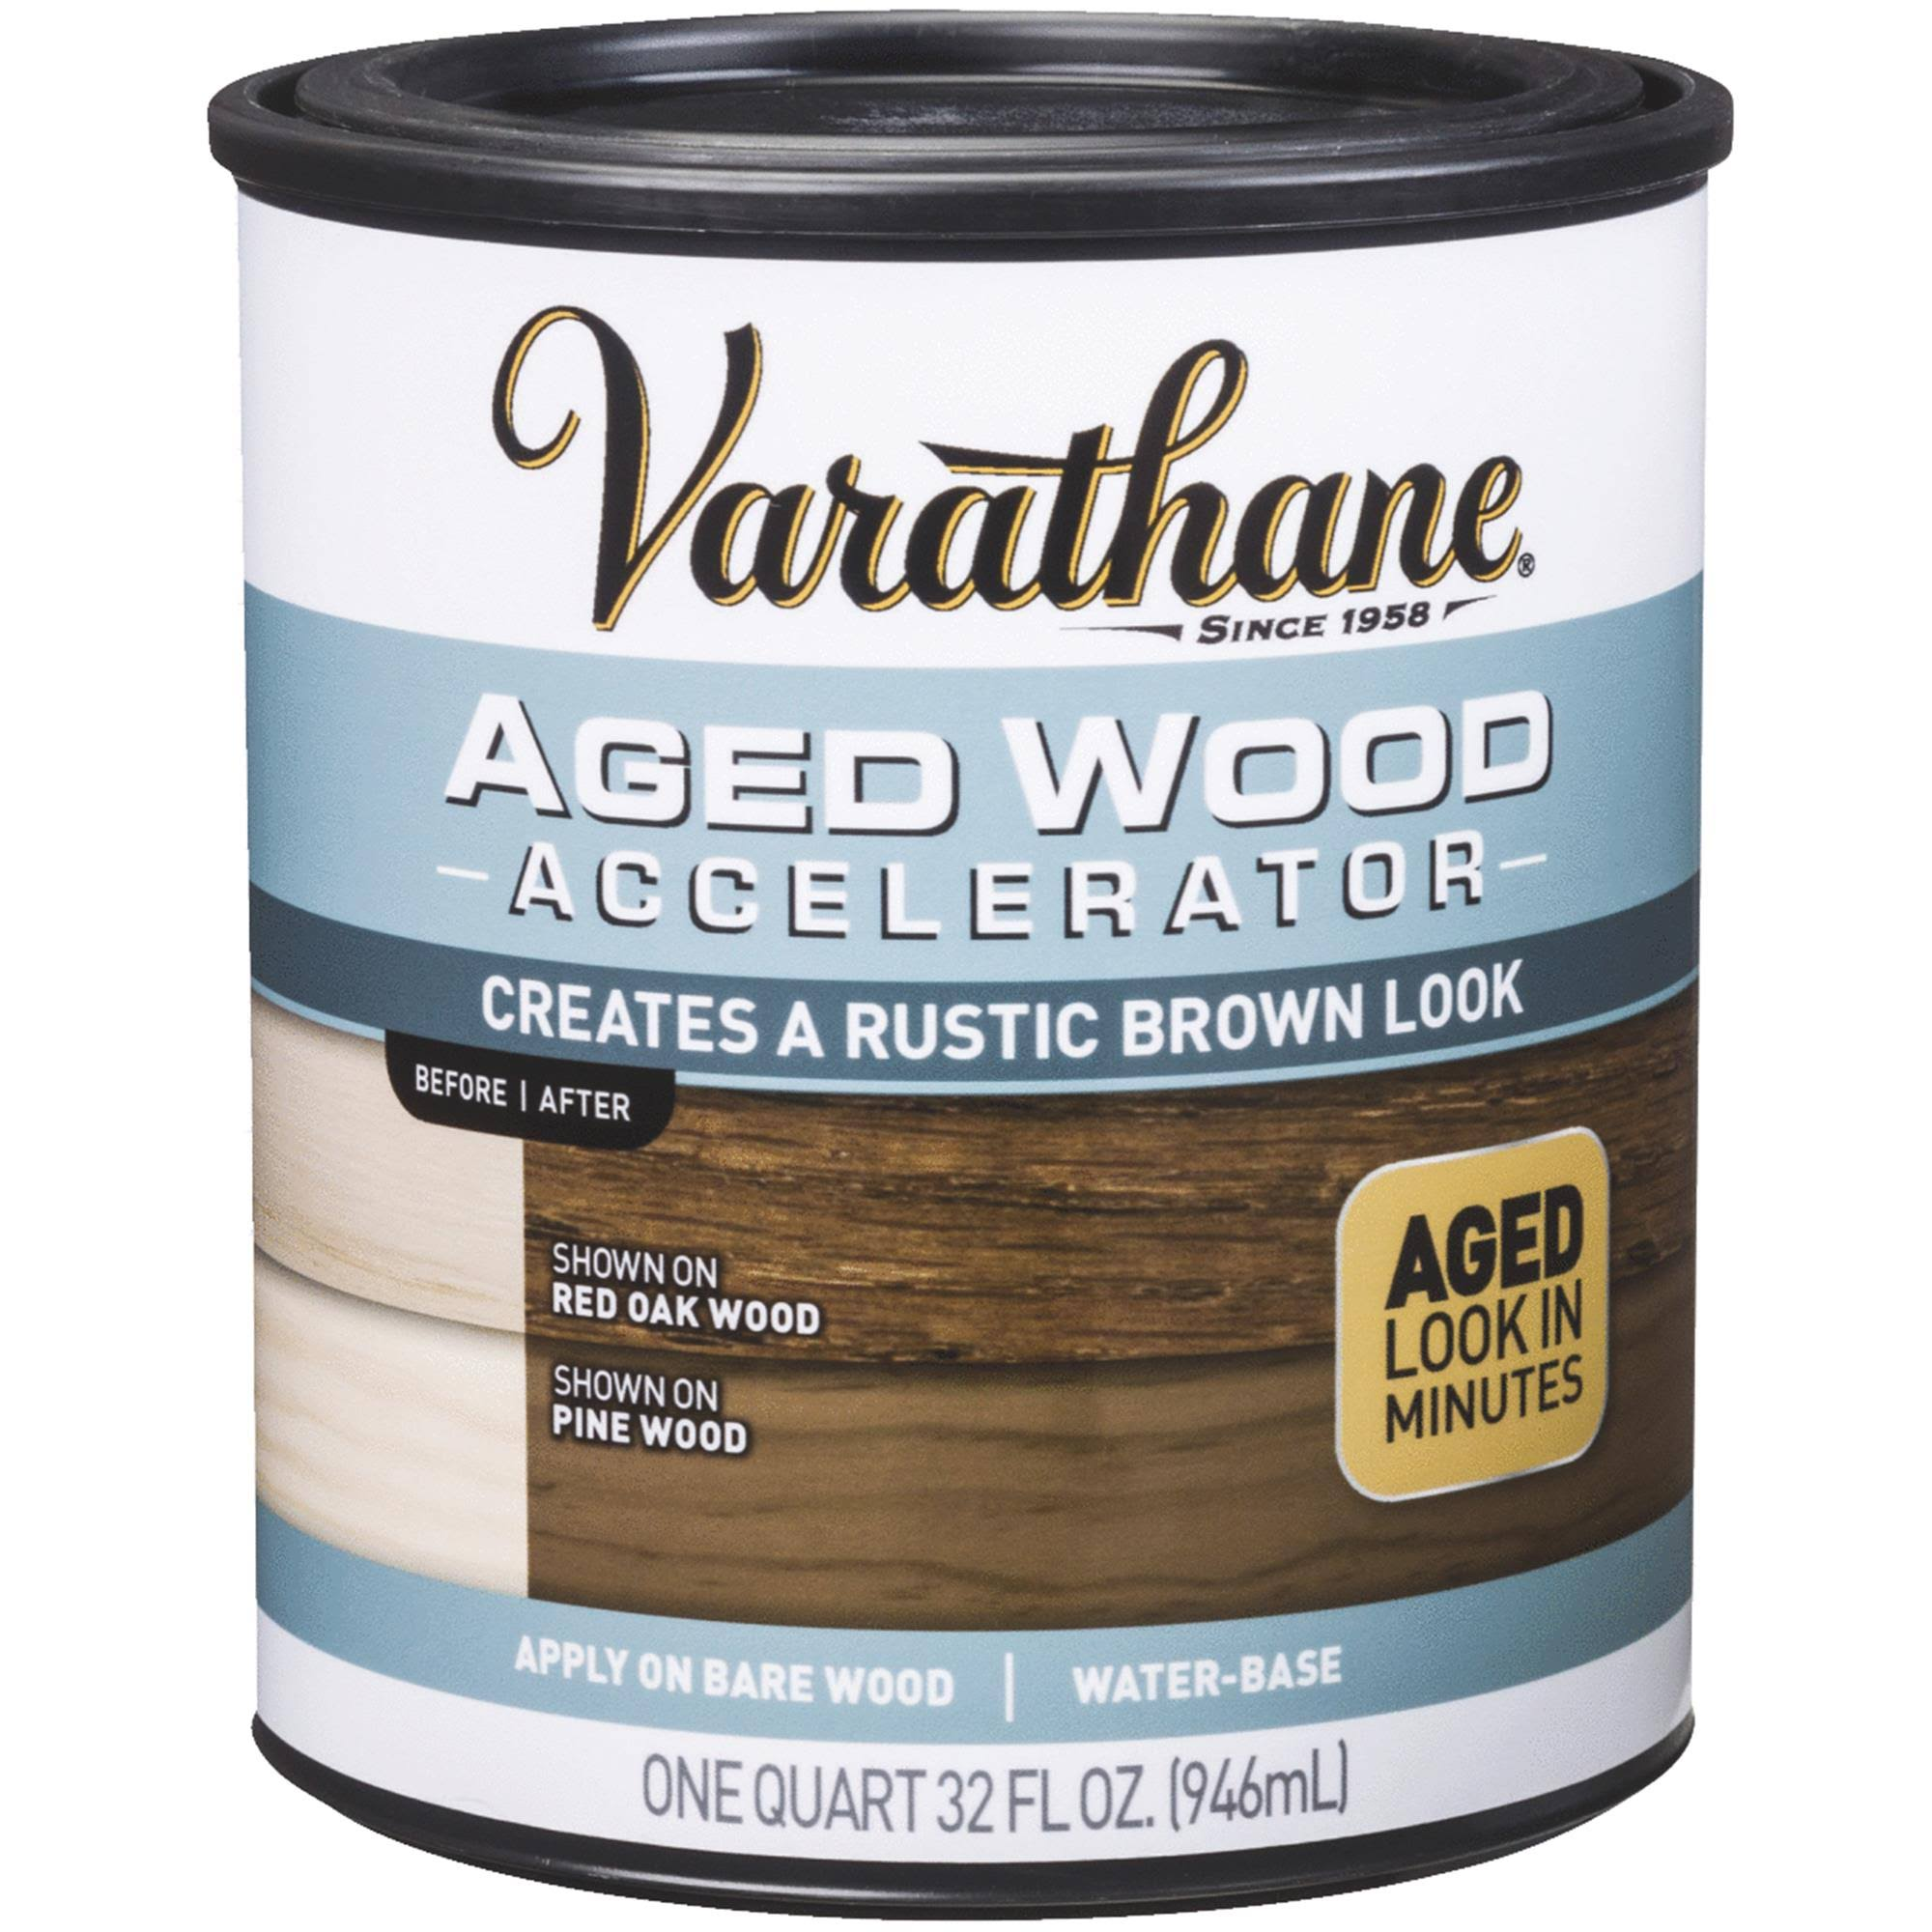 Varathane Wood Accelerator Interior Stain